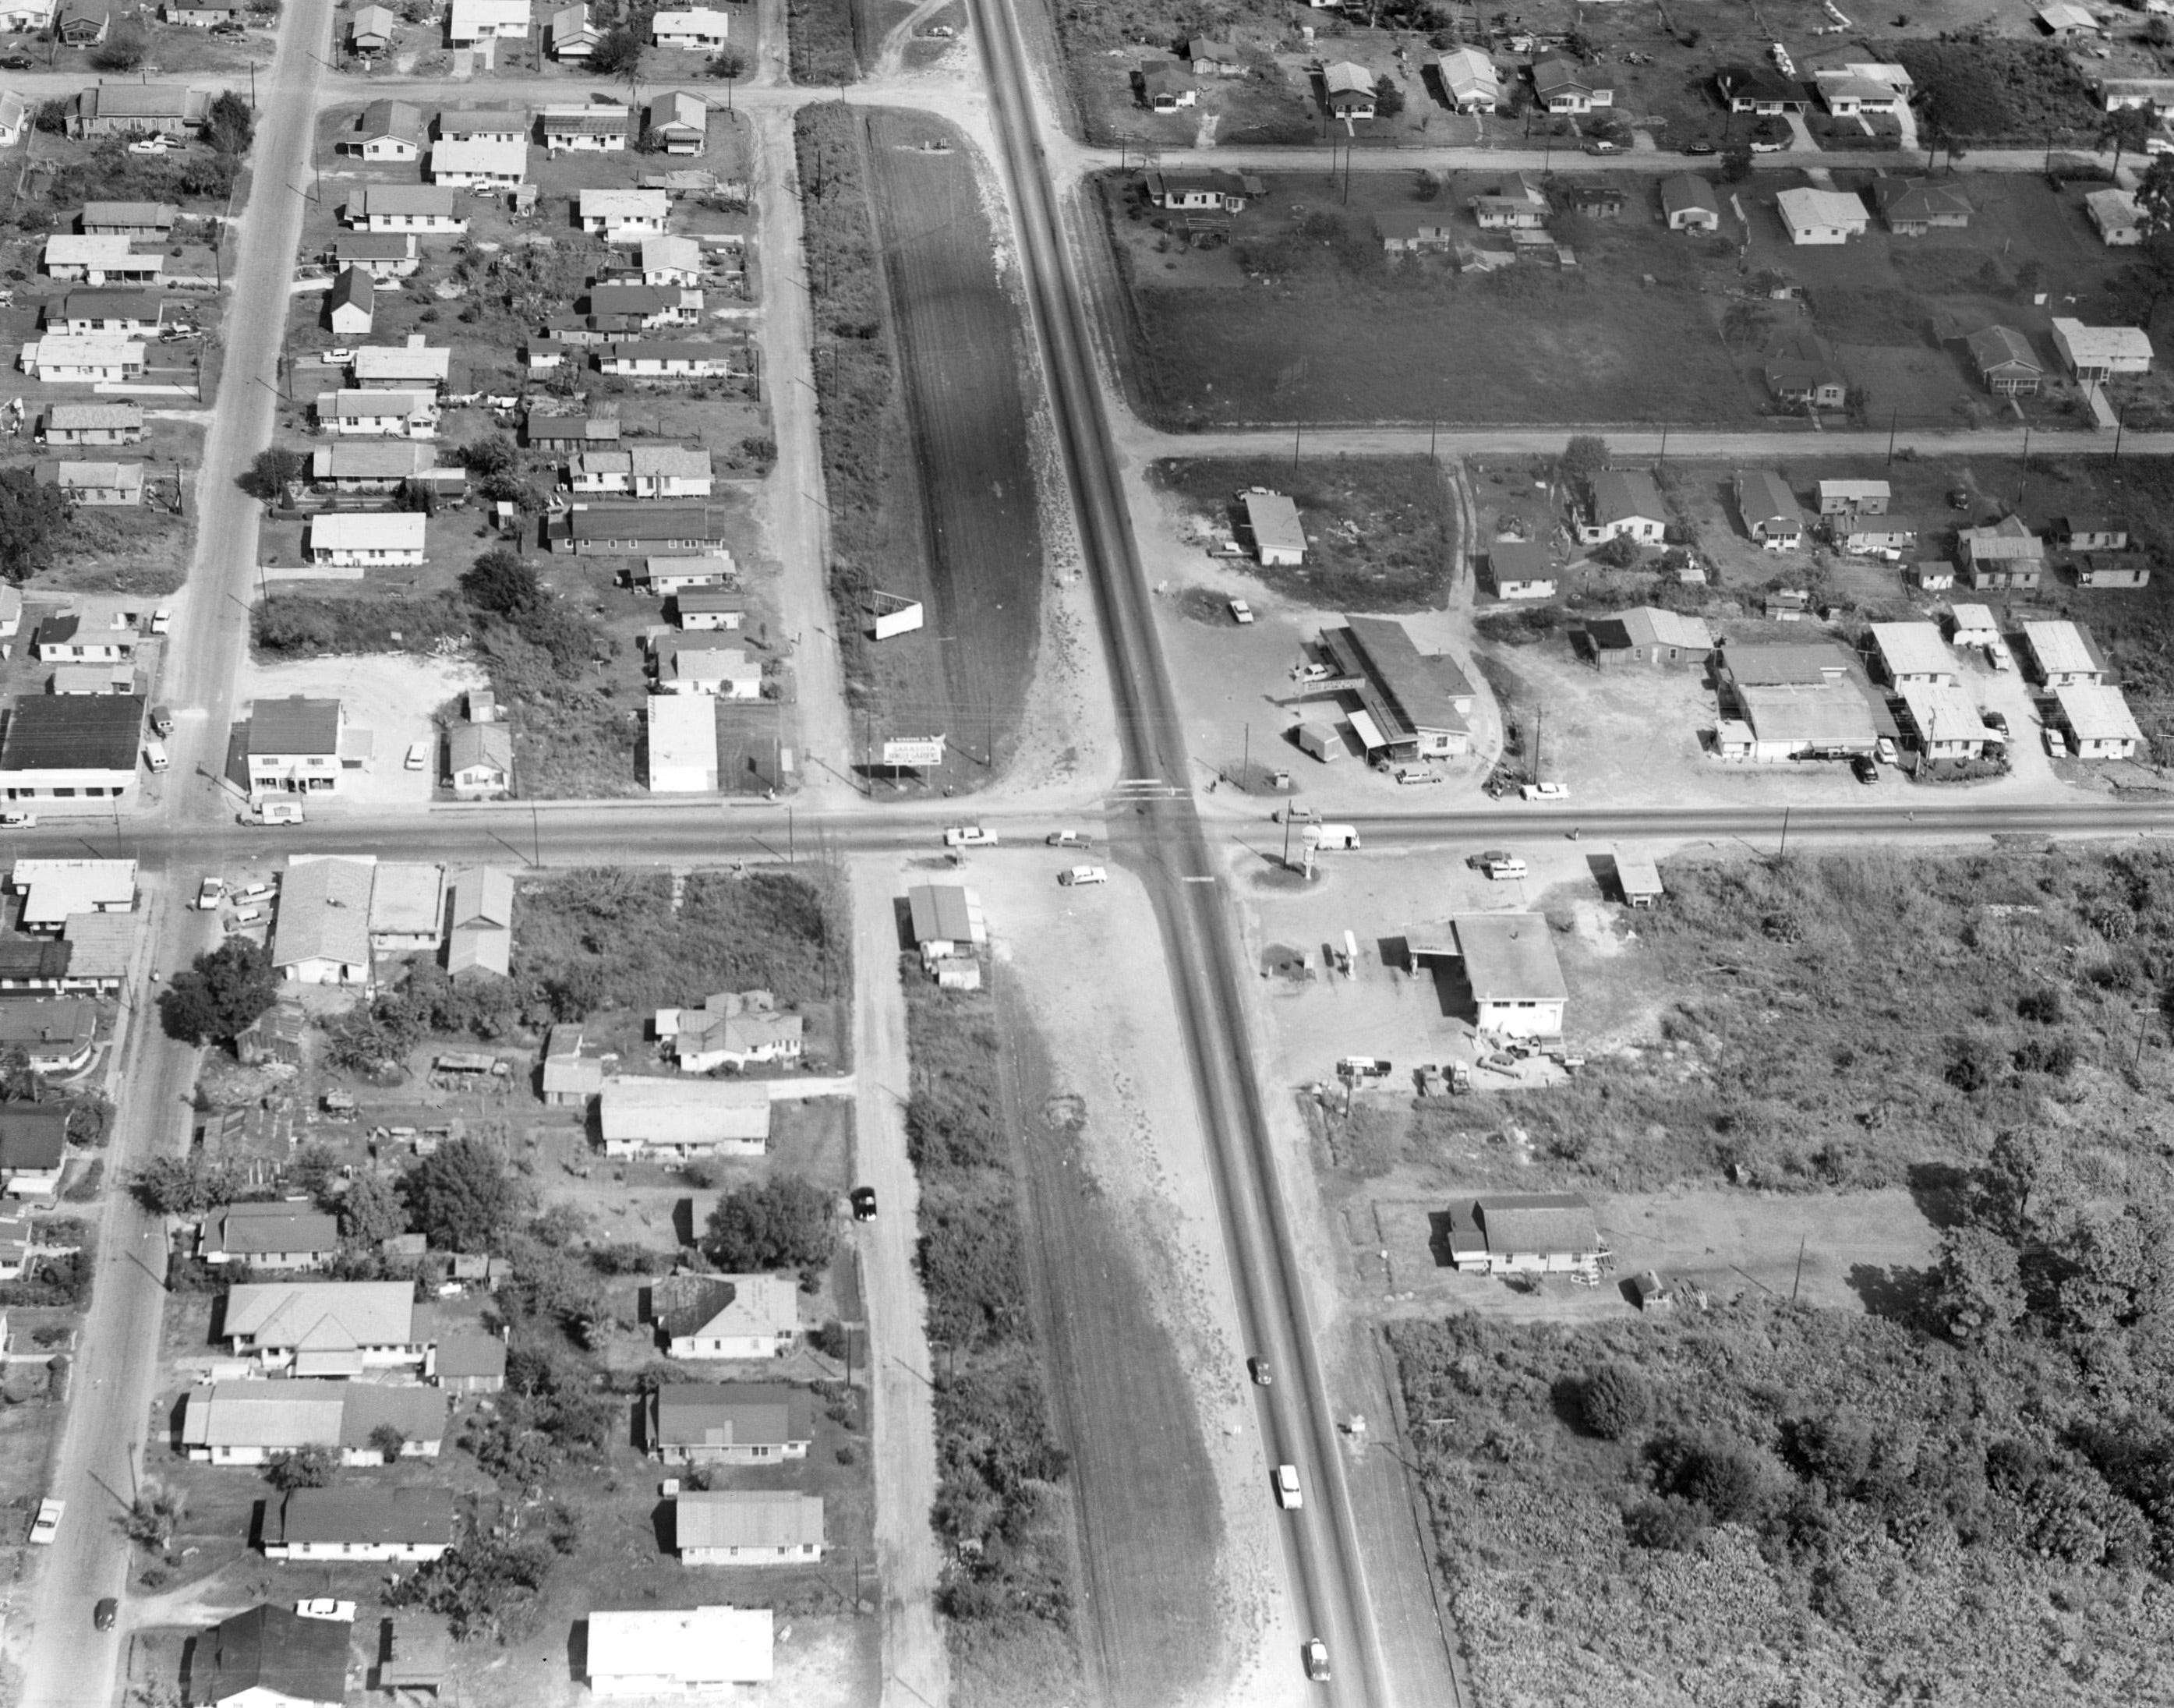 This undated aerial photo shows North Washington Boulevard (running bottom to top) looking north at the intersection of 27th Street in Sarasota. In the 1960s, North Washington Boulevard was widened into the six-lane U.S. Highway 301, effectively dividing the Newtown community.